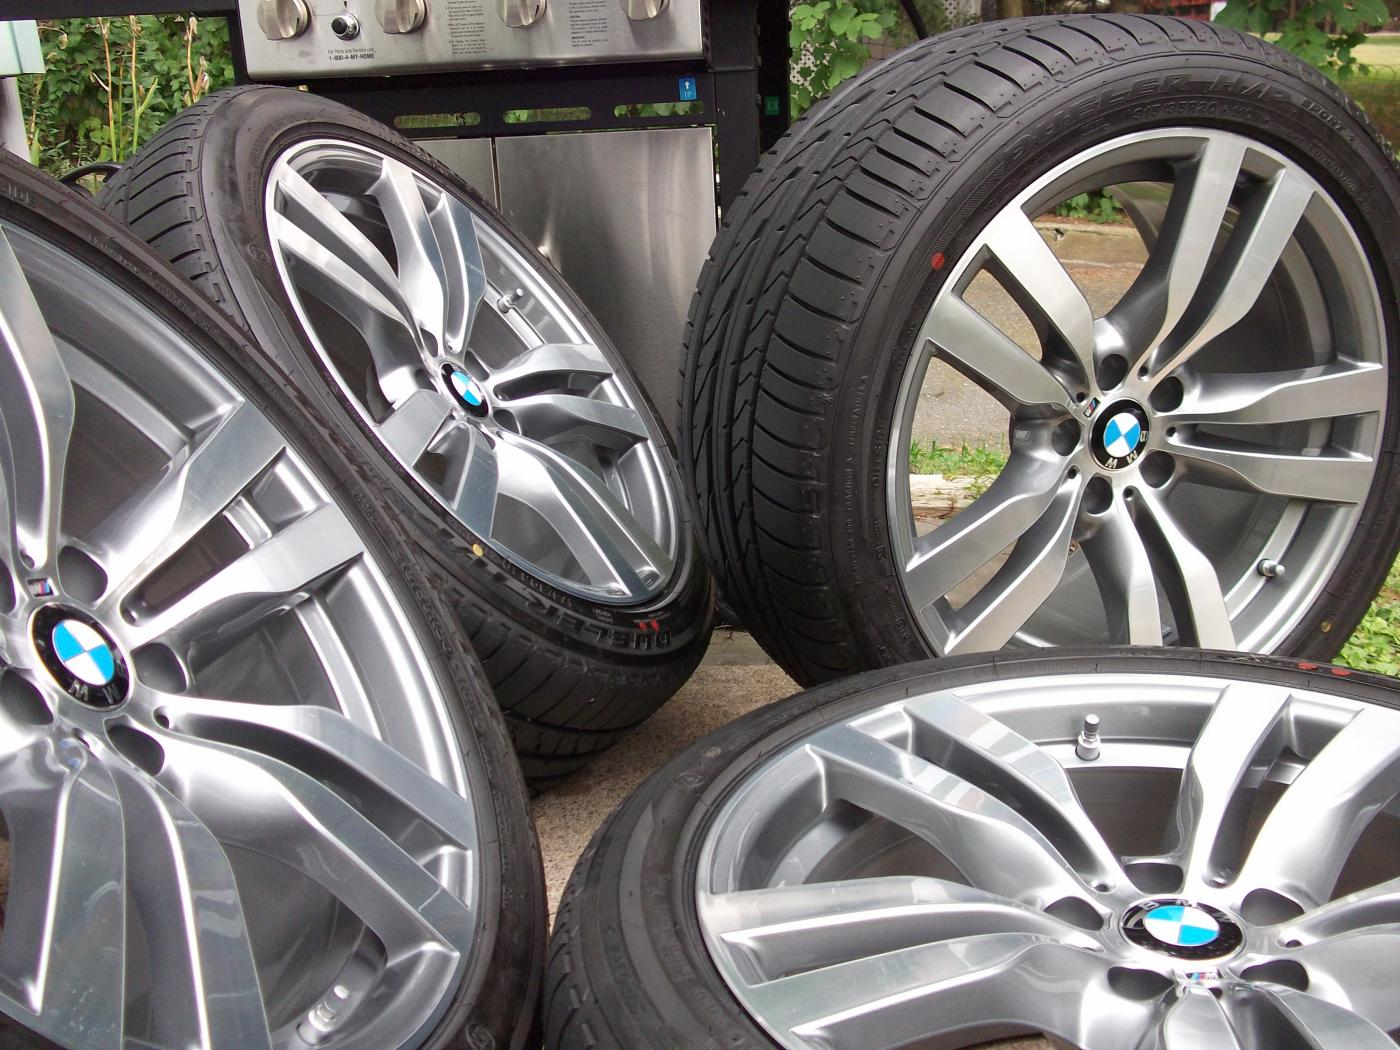 2011 Bmw X6m Factory 20 Quot Wheels Tires Amp Tpms Style 300m